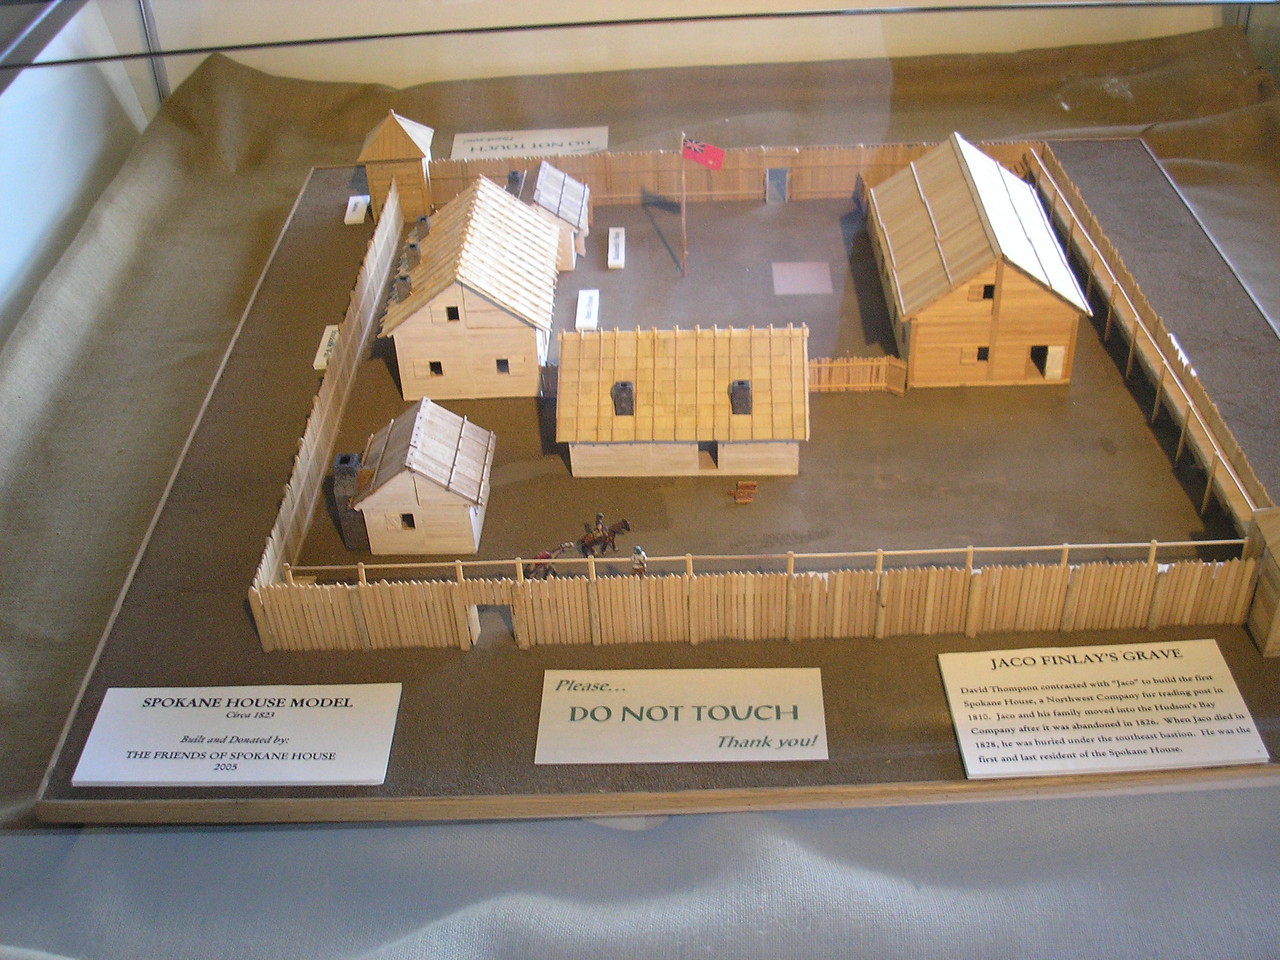 This is a display of what the spokane House looked like when it was under the Hudson Bay company.